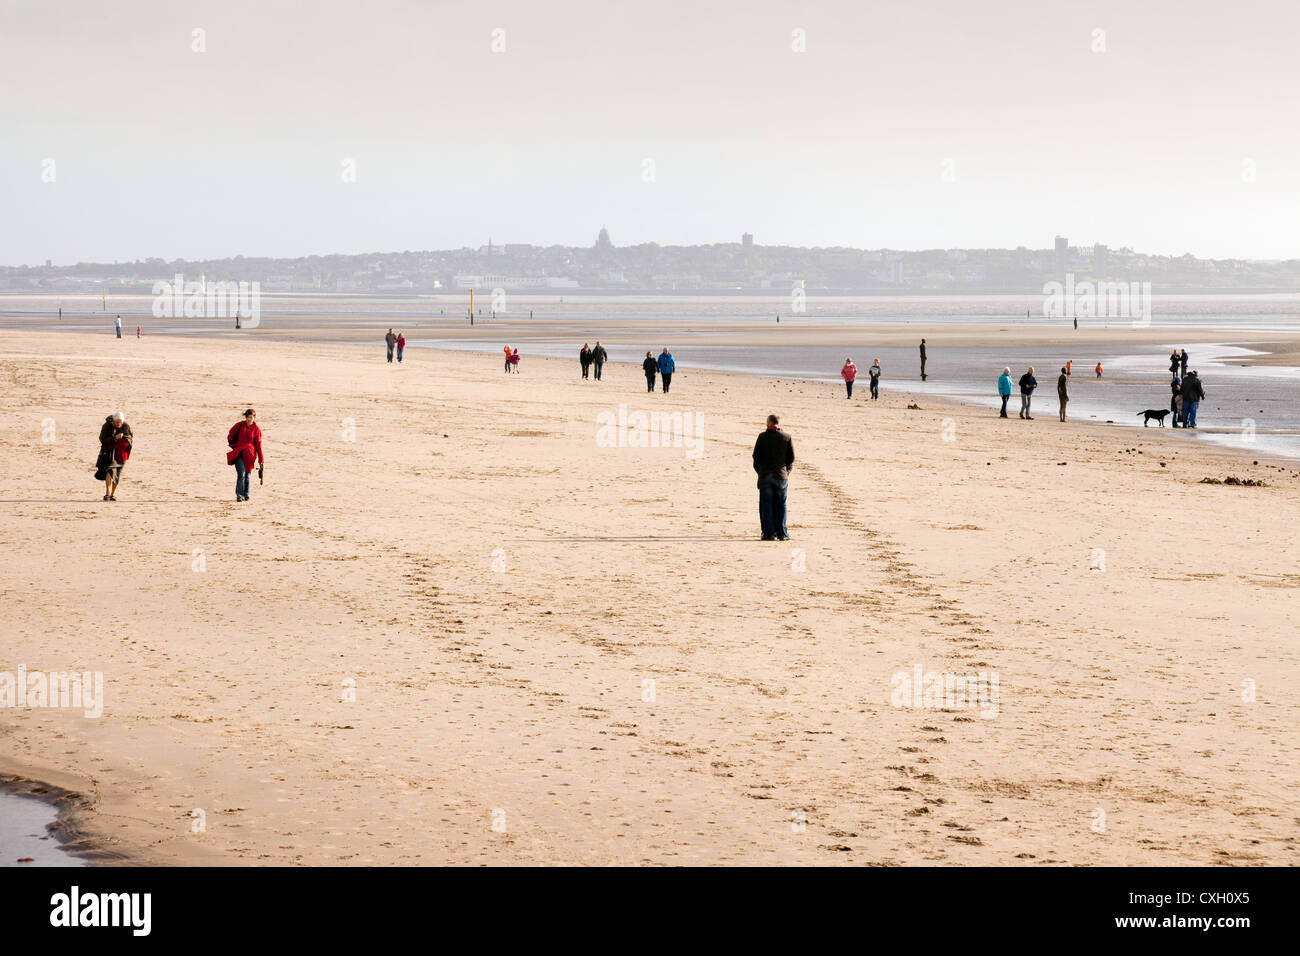 View of people on Crosby beach in the evening, Liverpool, Merseyside Lancashire UK - Stock Image